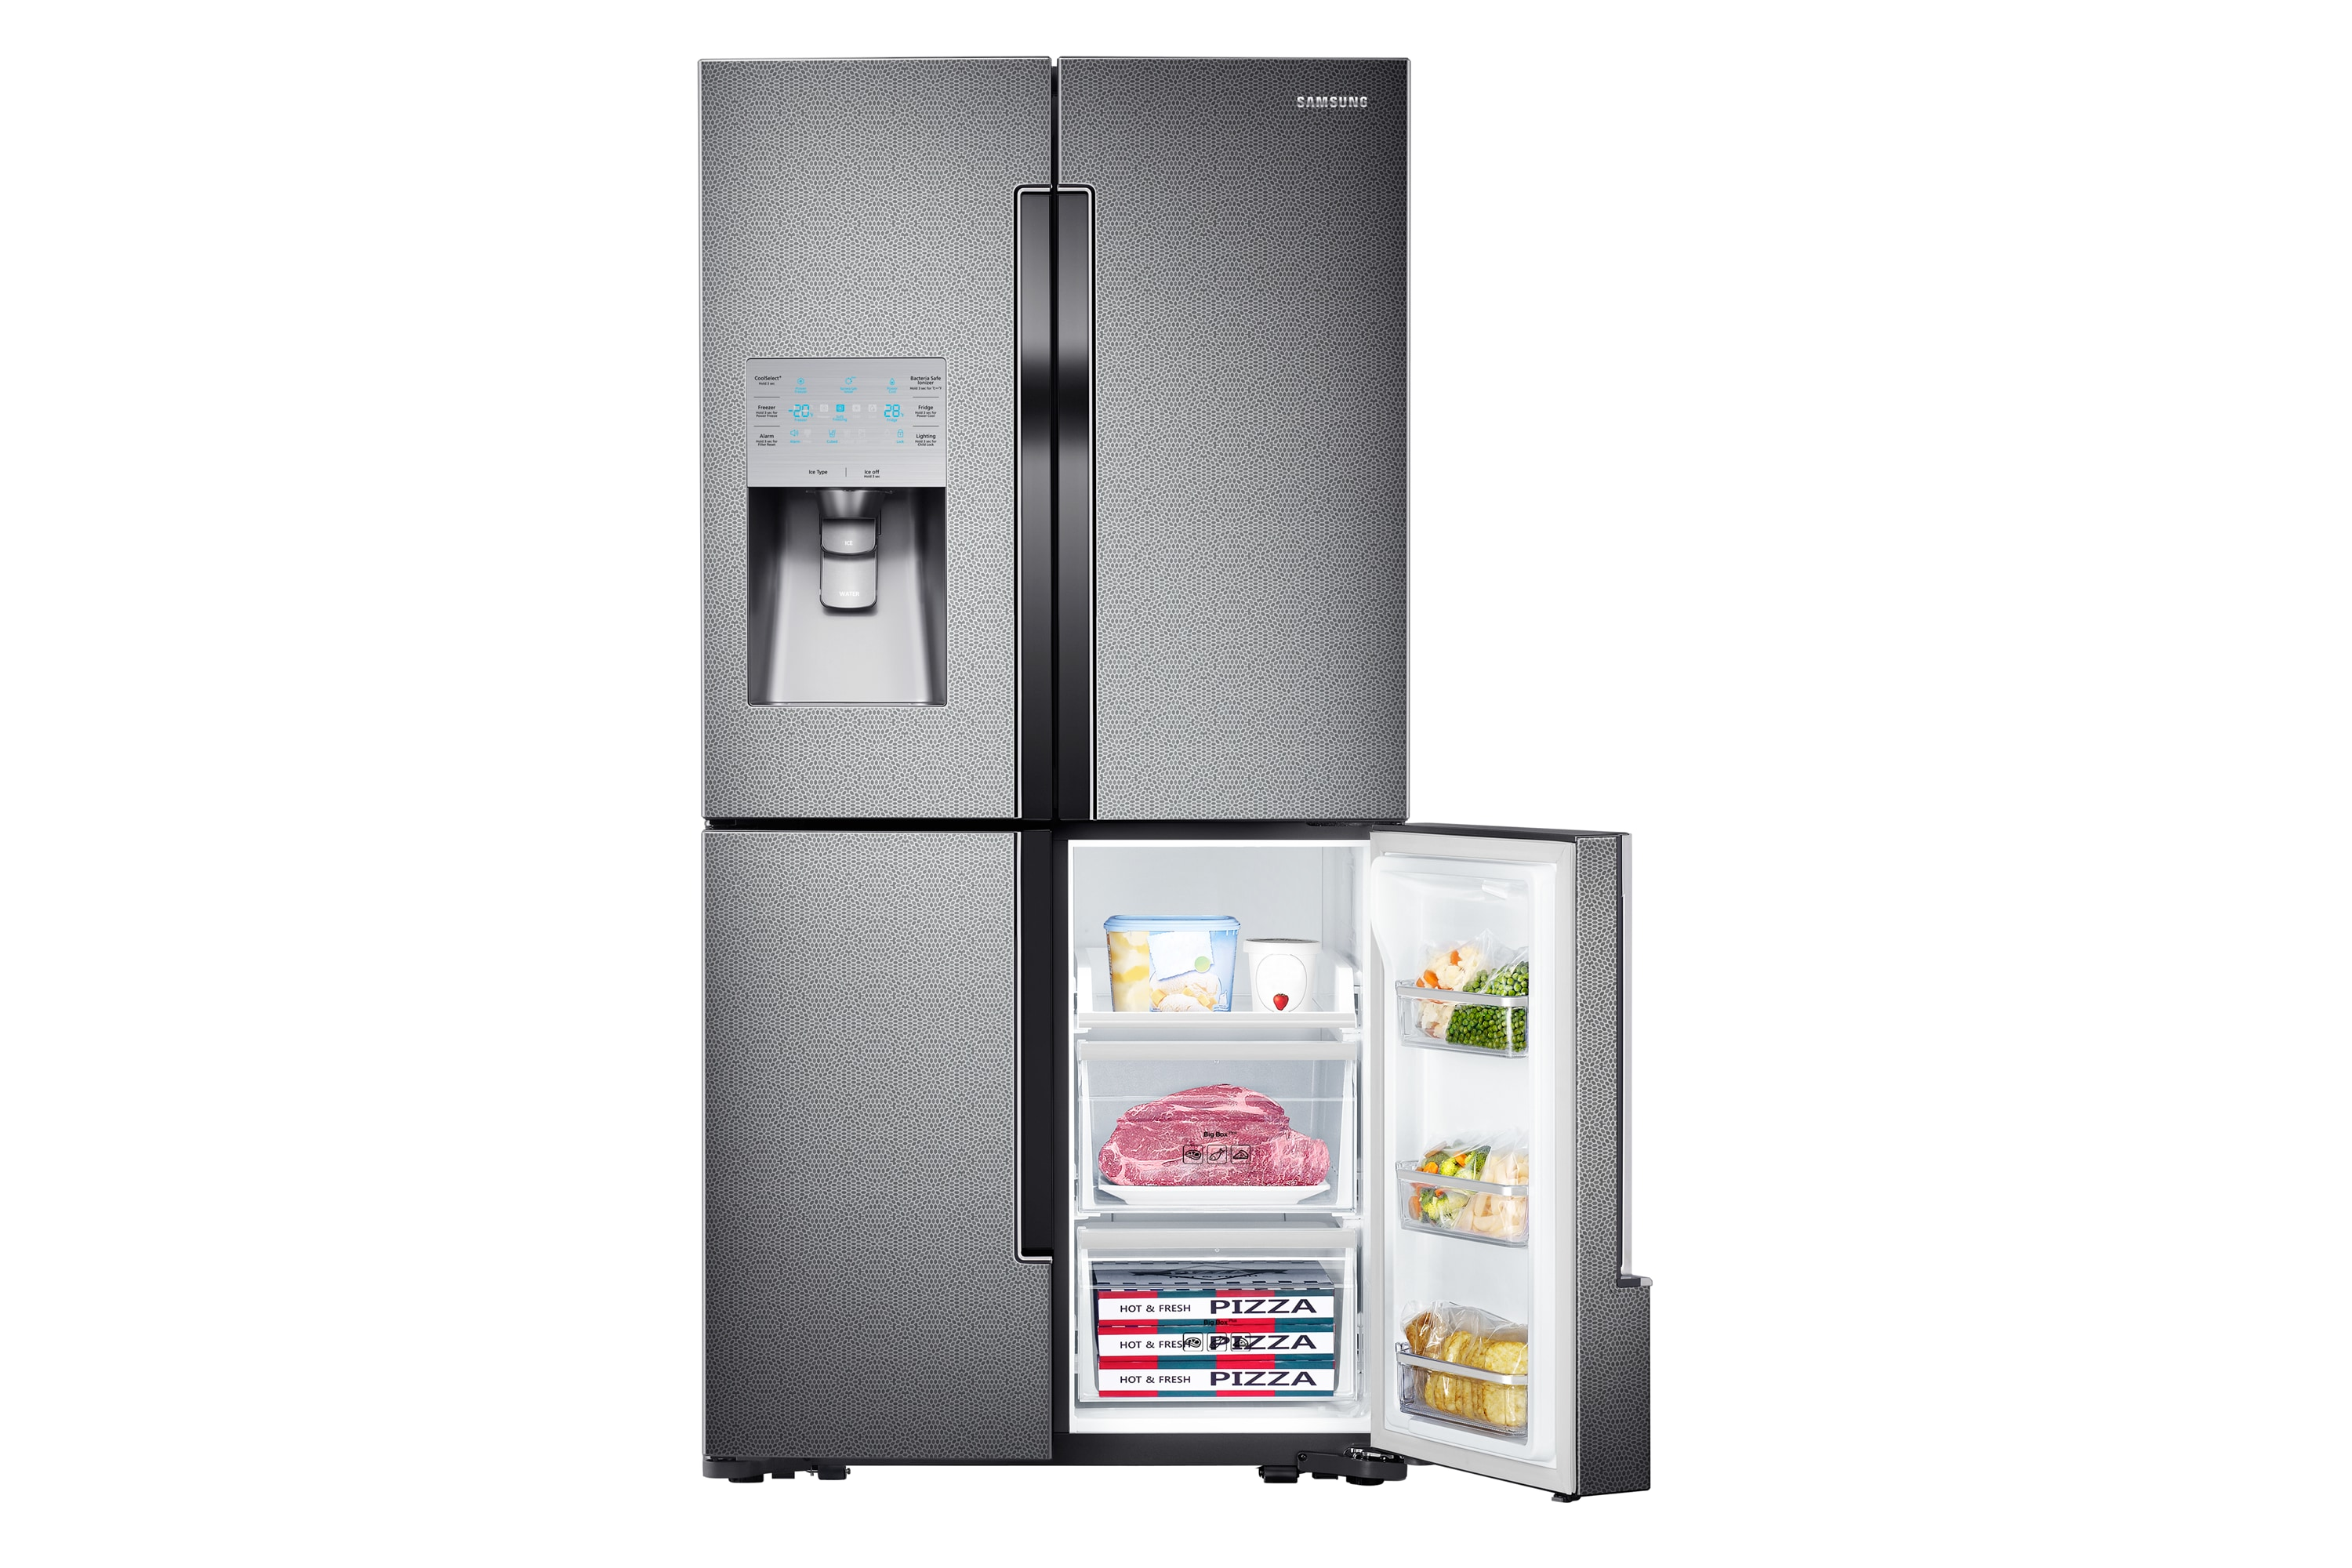 Samsung Double Door Refrigerator Price French Door